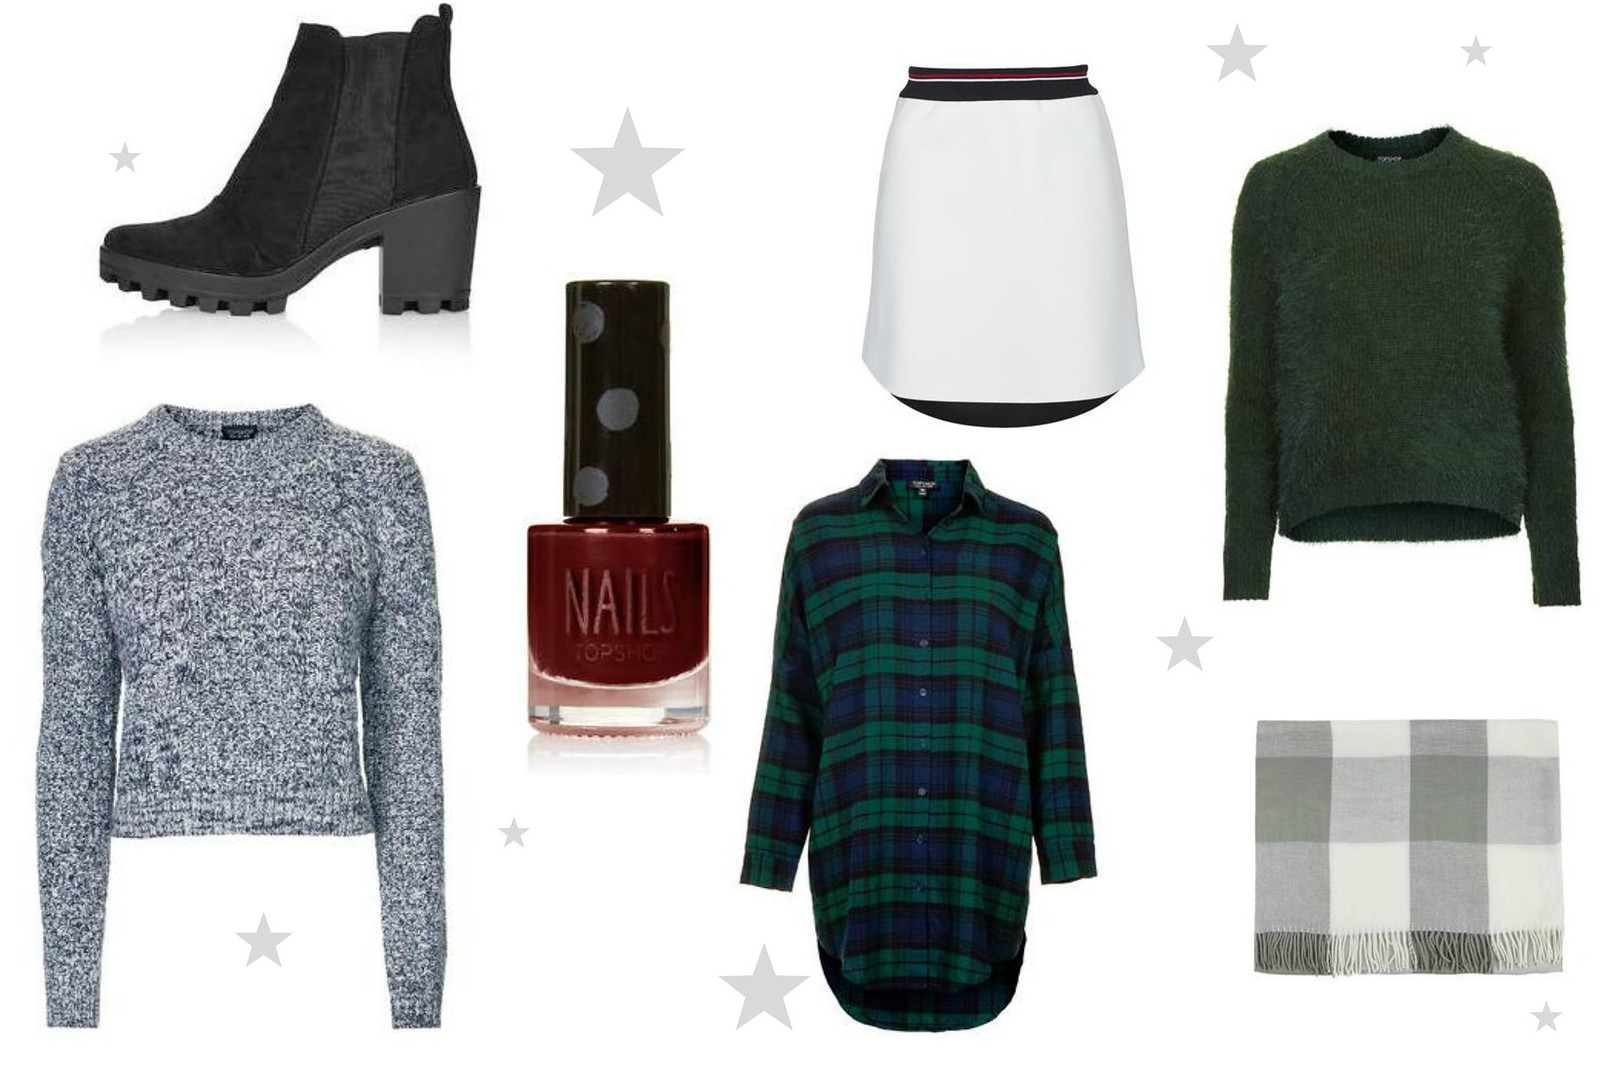 Topshop Wish List